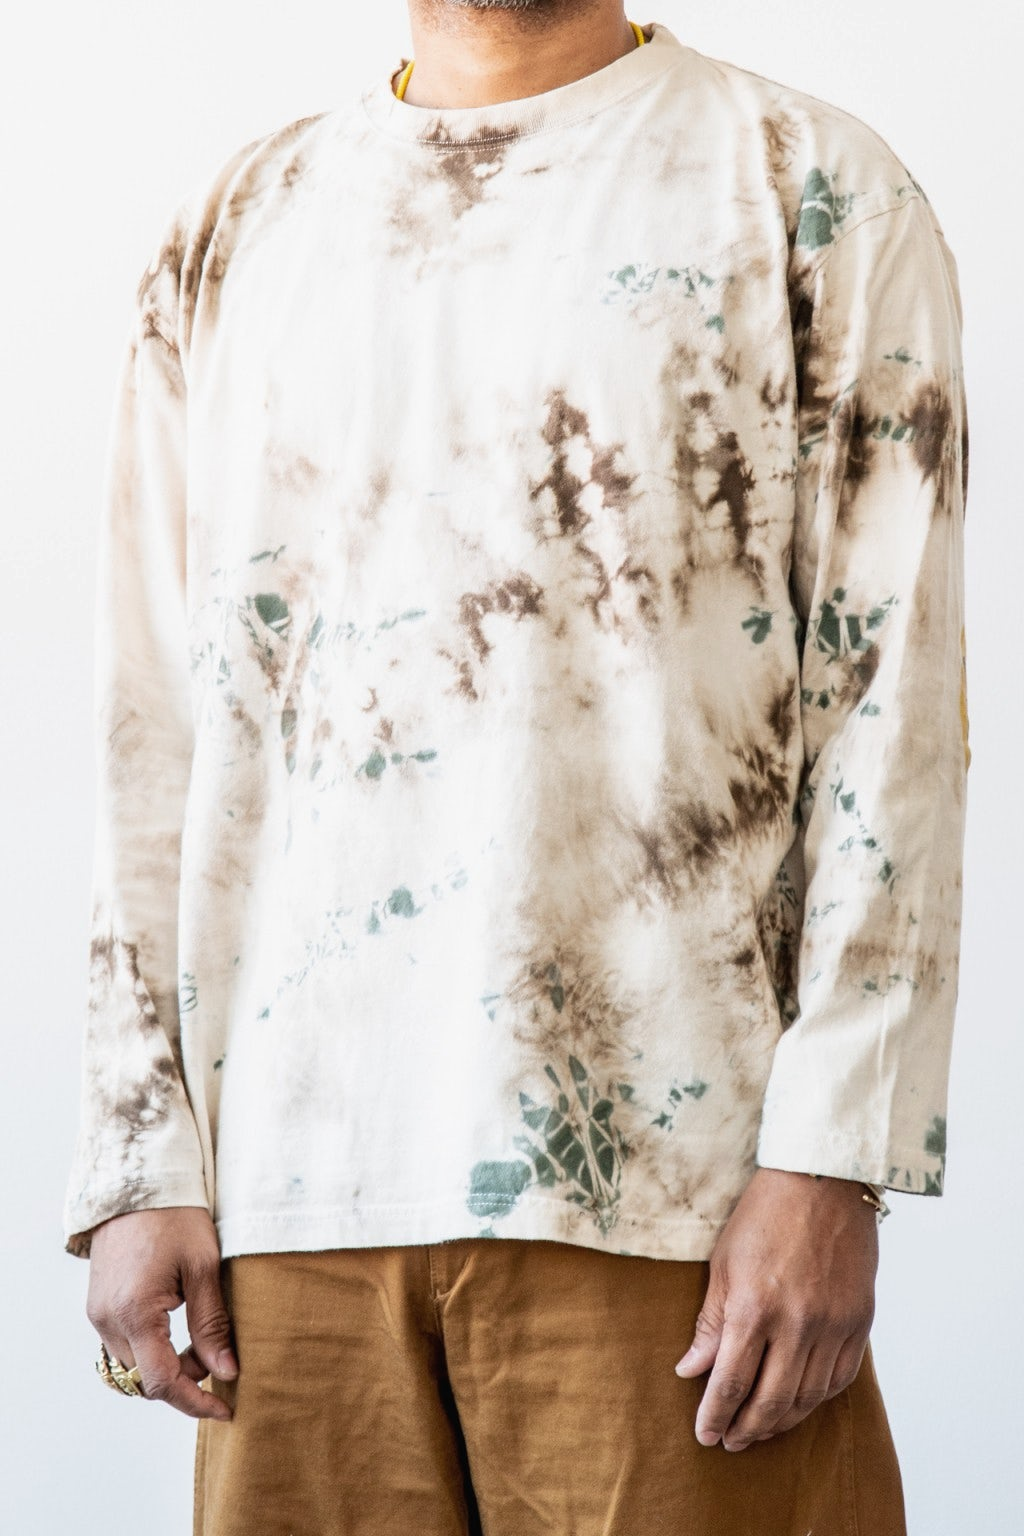 Kapital Jersey Smilie Patch Crew T (ASHBURY Dyed) Brown X Khaki